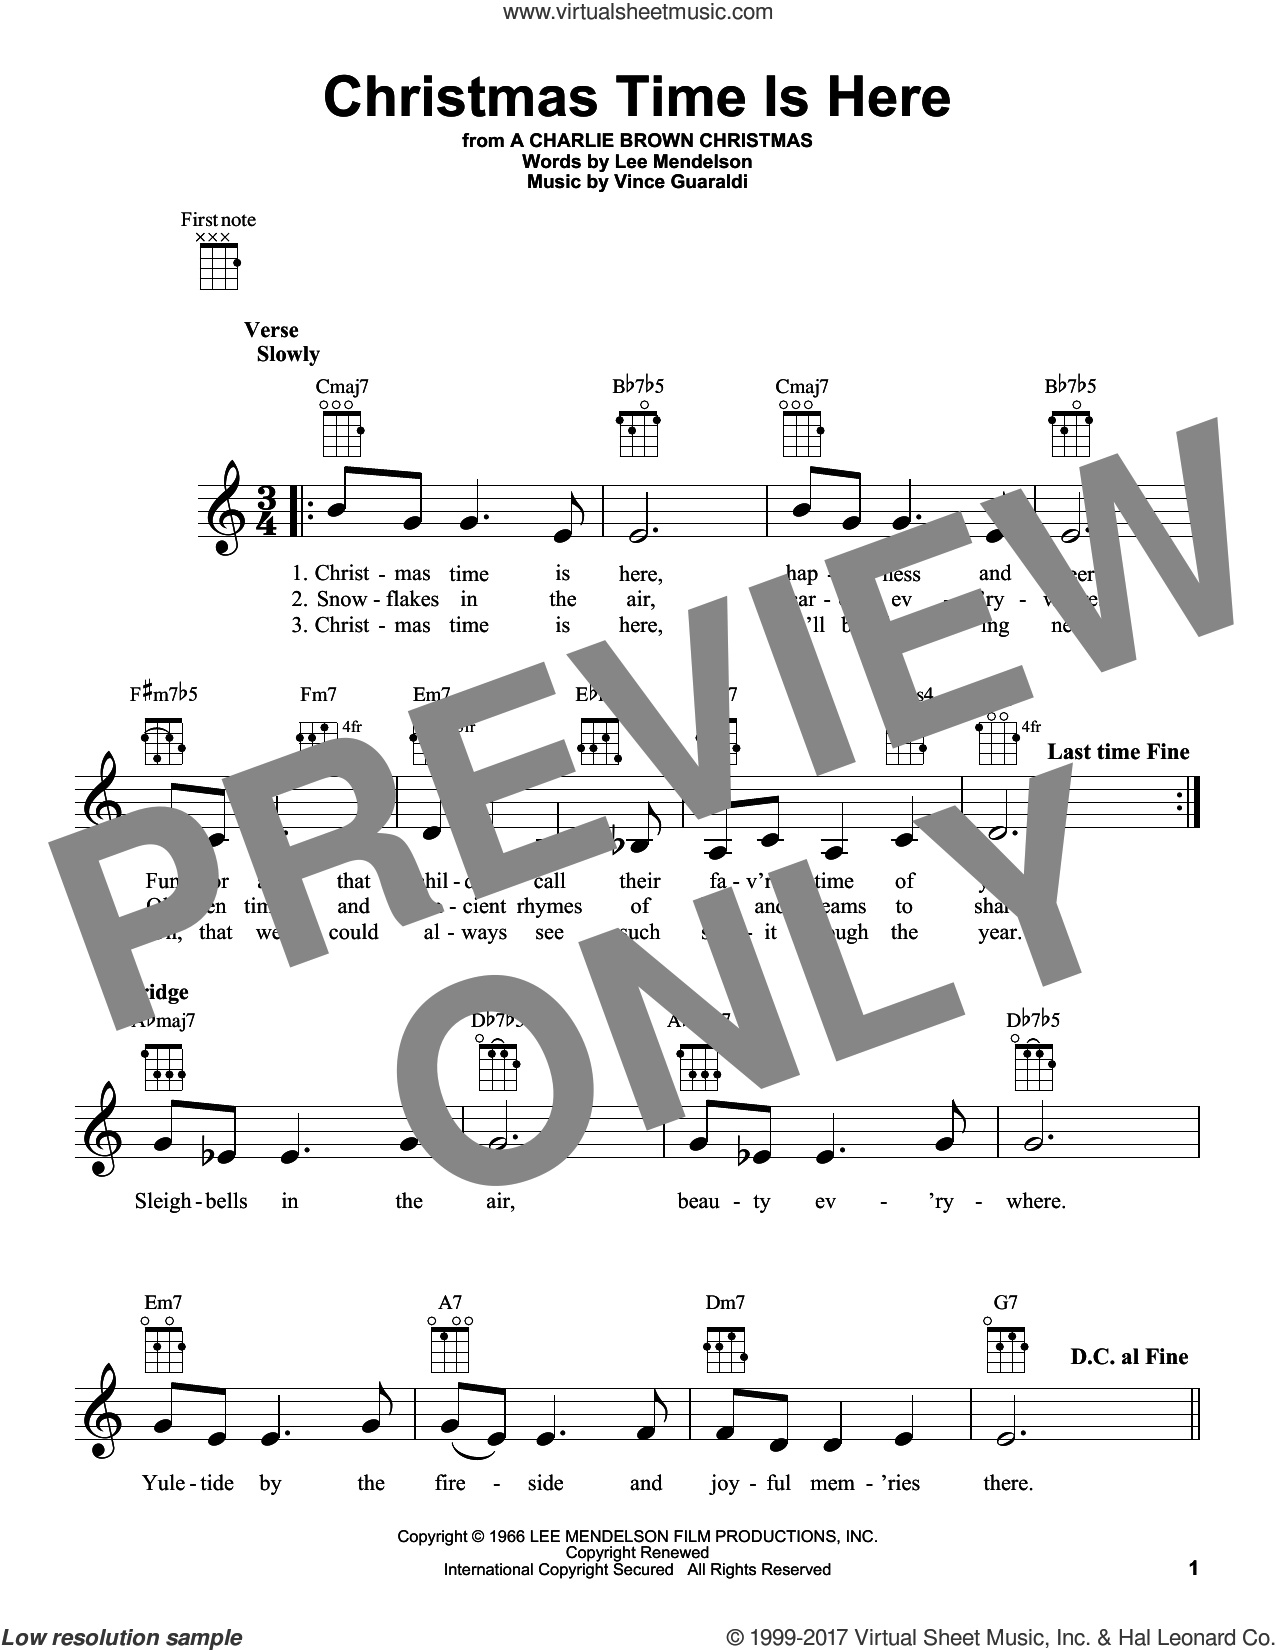 Christmas Time Is Here sheet music for ukulele by Vince Guaraldi and Lee Mendelson, intermediate skill level